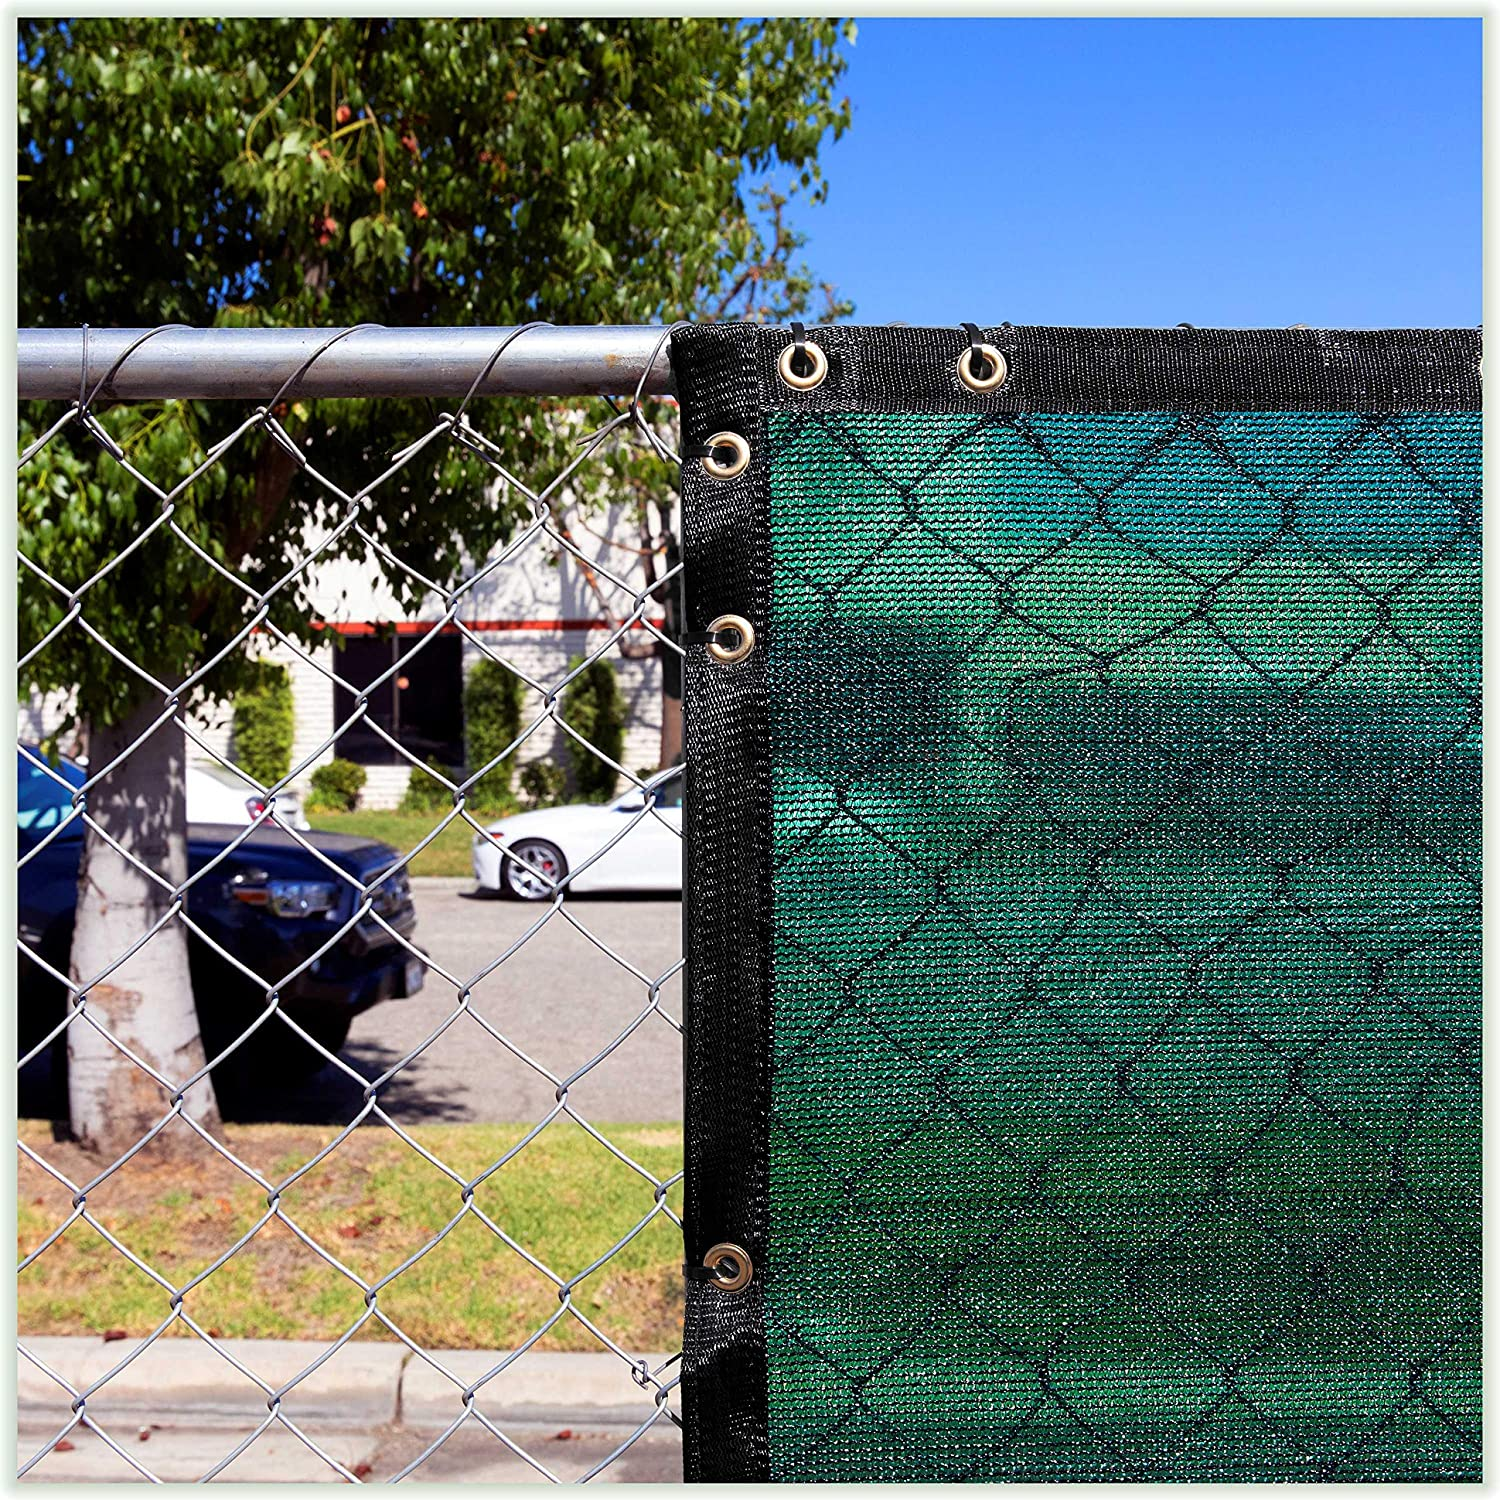 Amazon Com Colourtree Customized Size Fence Screen Privacy Screen Green 4 X 25 Commercial Grade 170 Gsm Heavy Duty We Make Custom Size Garden Outdoor